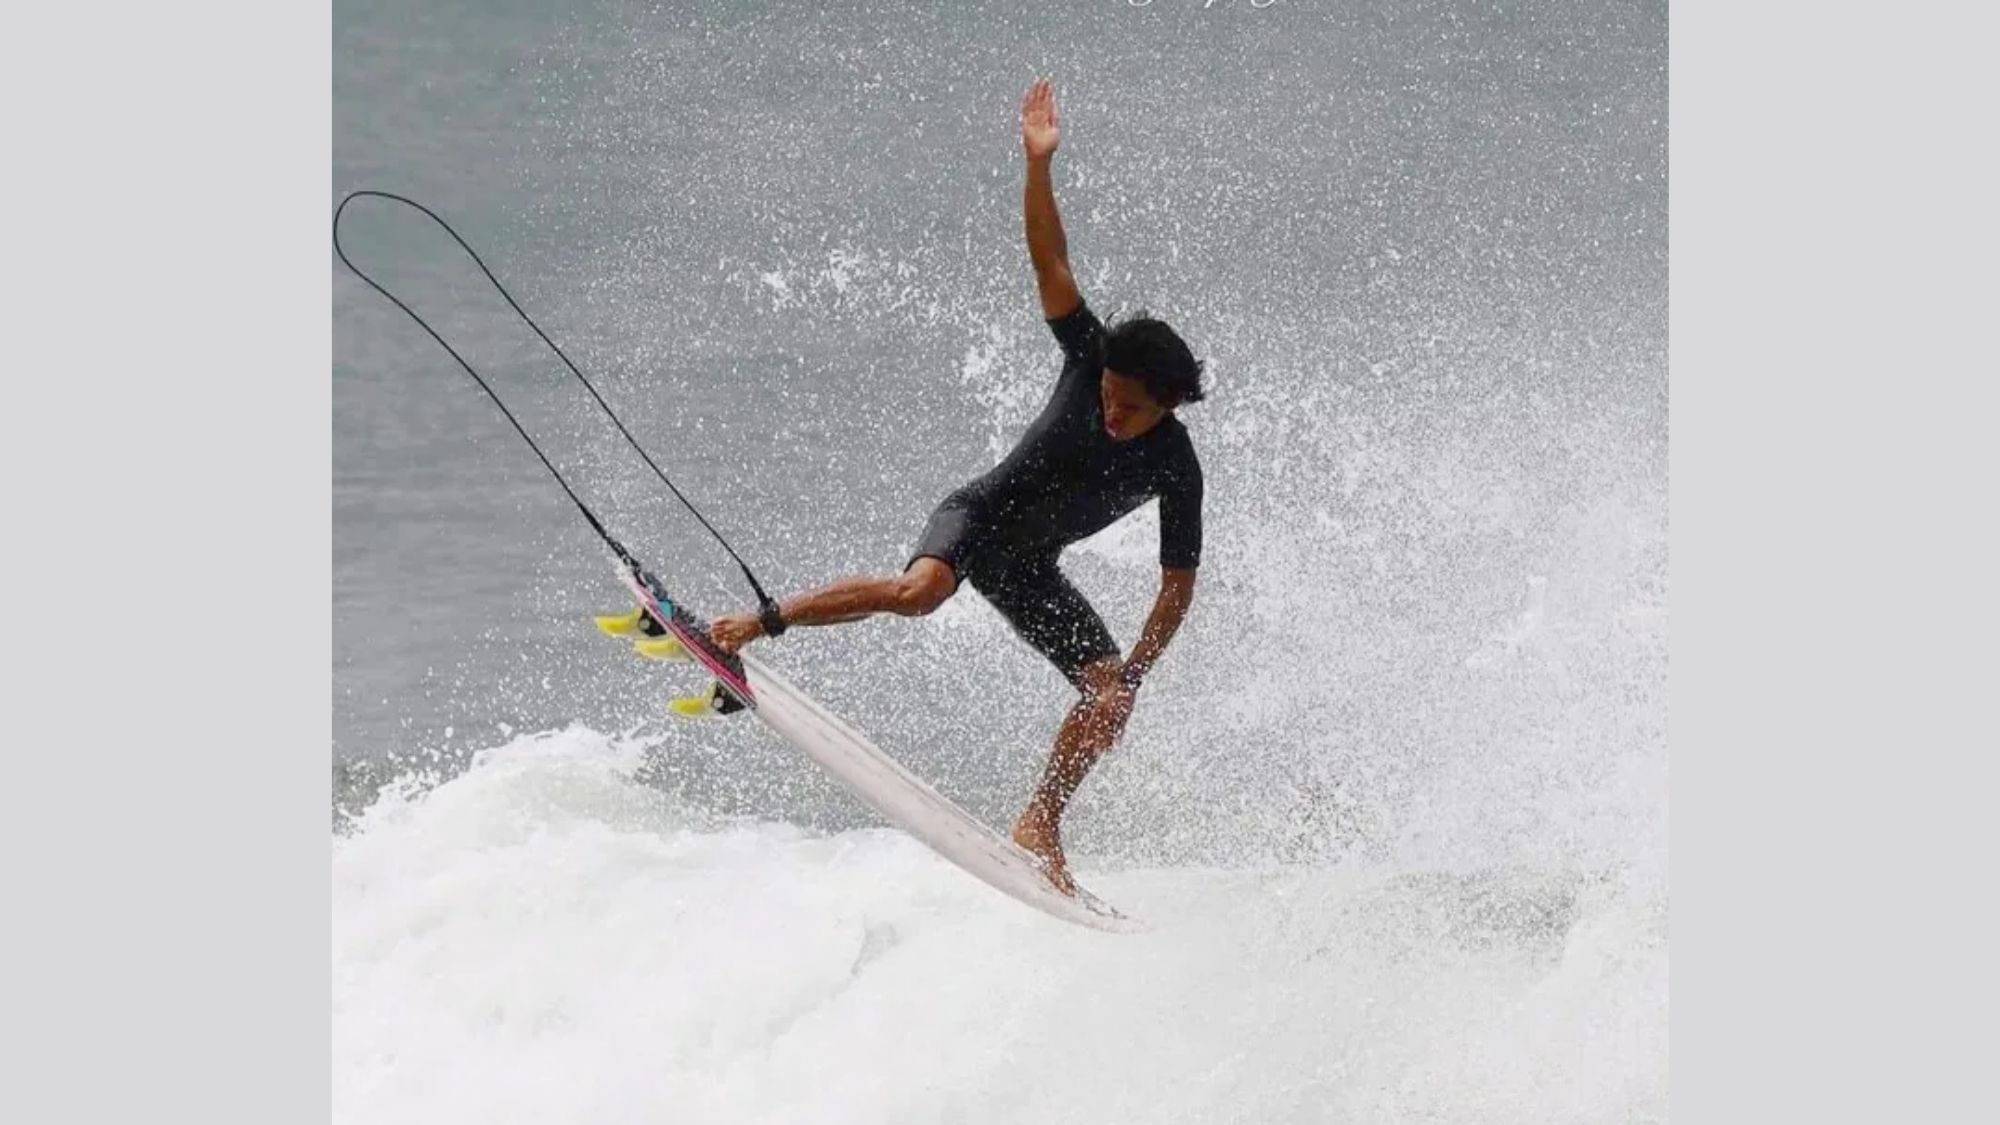 Filipino surfers vie for Olympic slot in El Salvador qualifiers